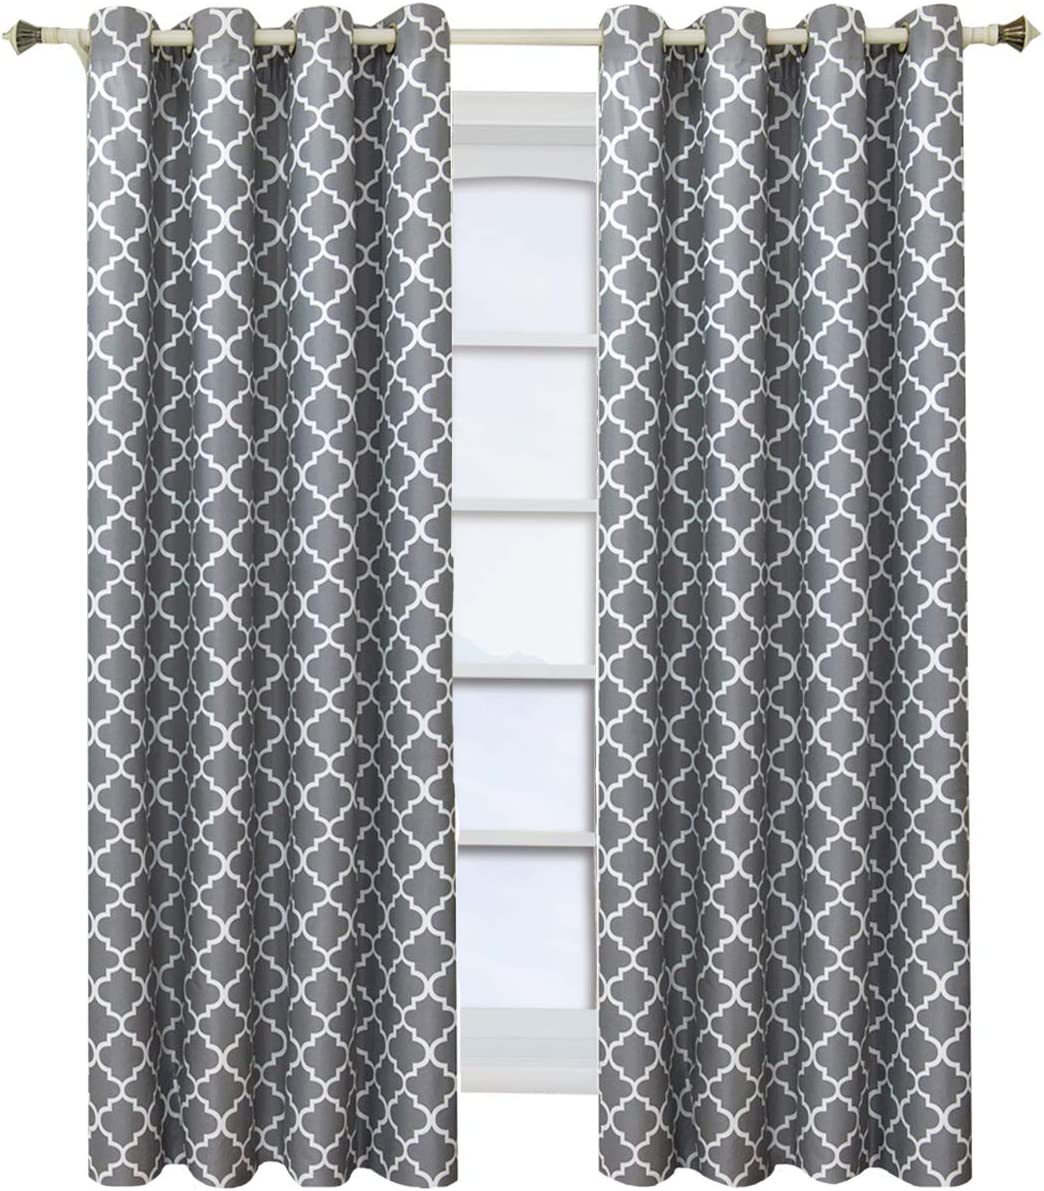 Royal Tradition Set of 2 Panels 104 Wx84 L Meridian - Grey- Thermal Insulated Room-Darkening Curtain, 52-Inch by 84-Inch Each Panel. Package Contains Set of 2 Panels 84 inch Long.